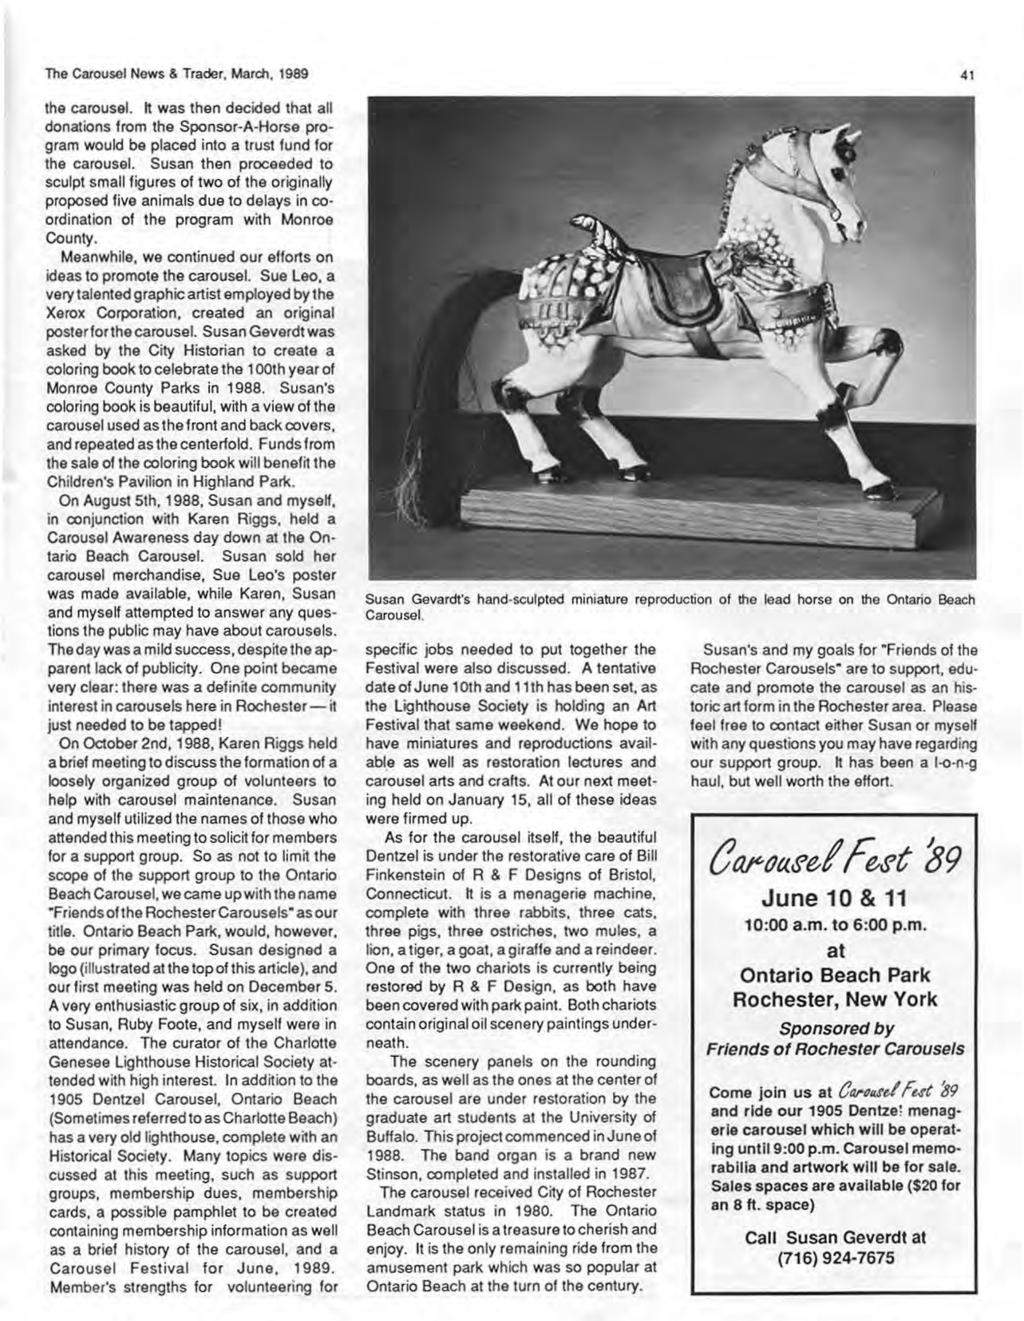 The Carousel News & Trader, March, 1989 the carousel. It was then decided that all donations from the Sponsor-A-Horse program would be placed into a trust fund for the carousel.